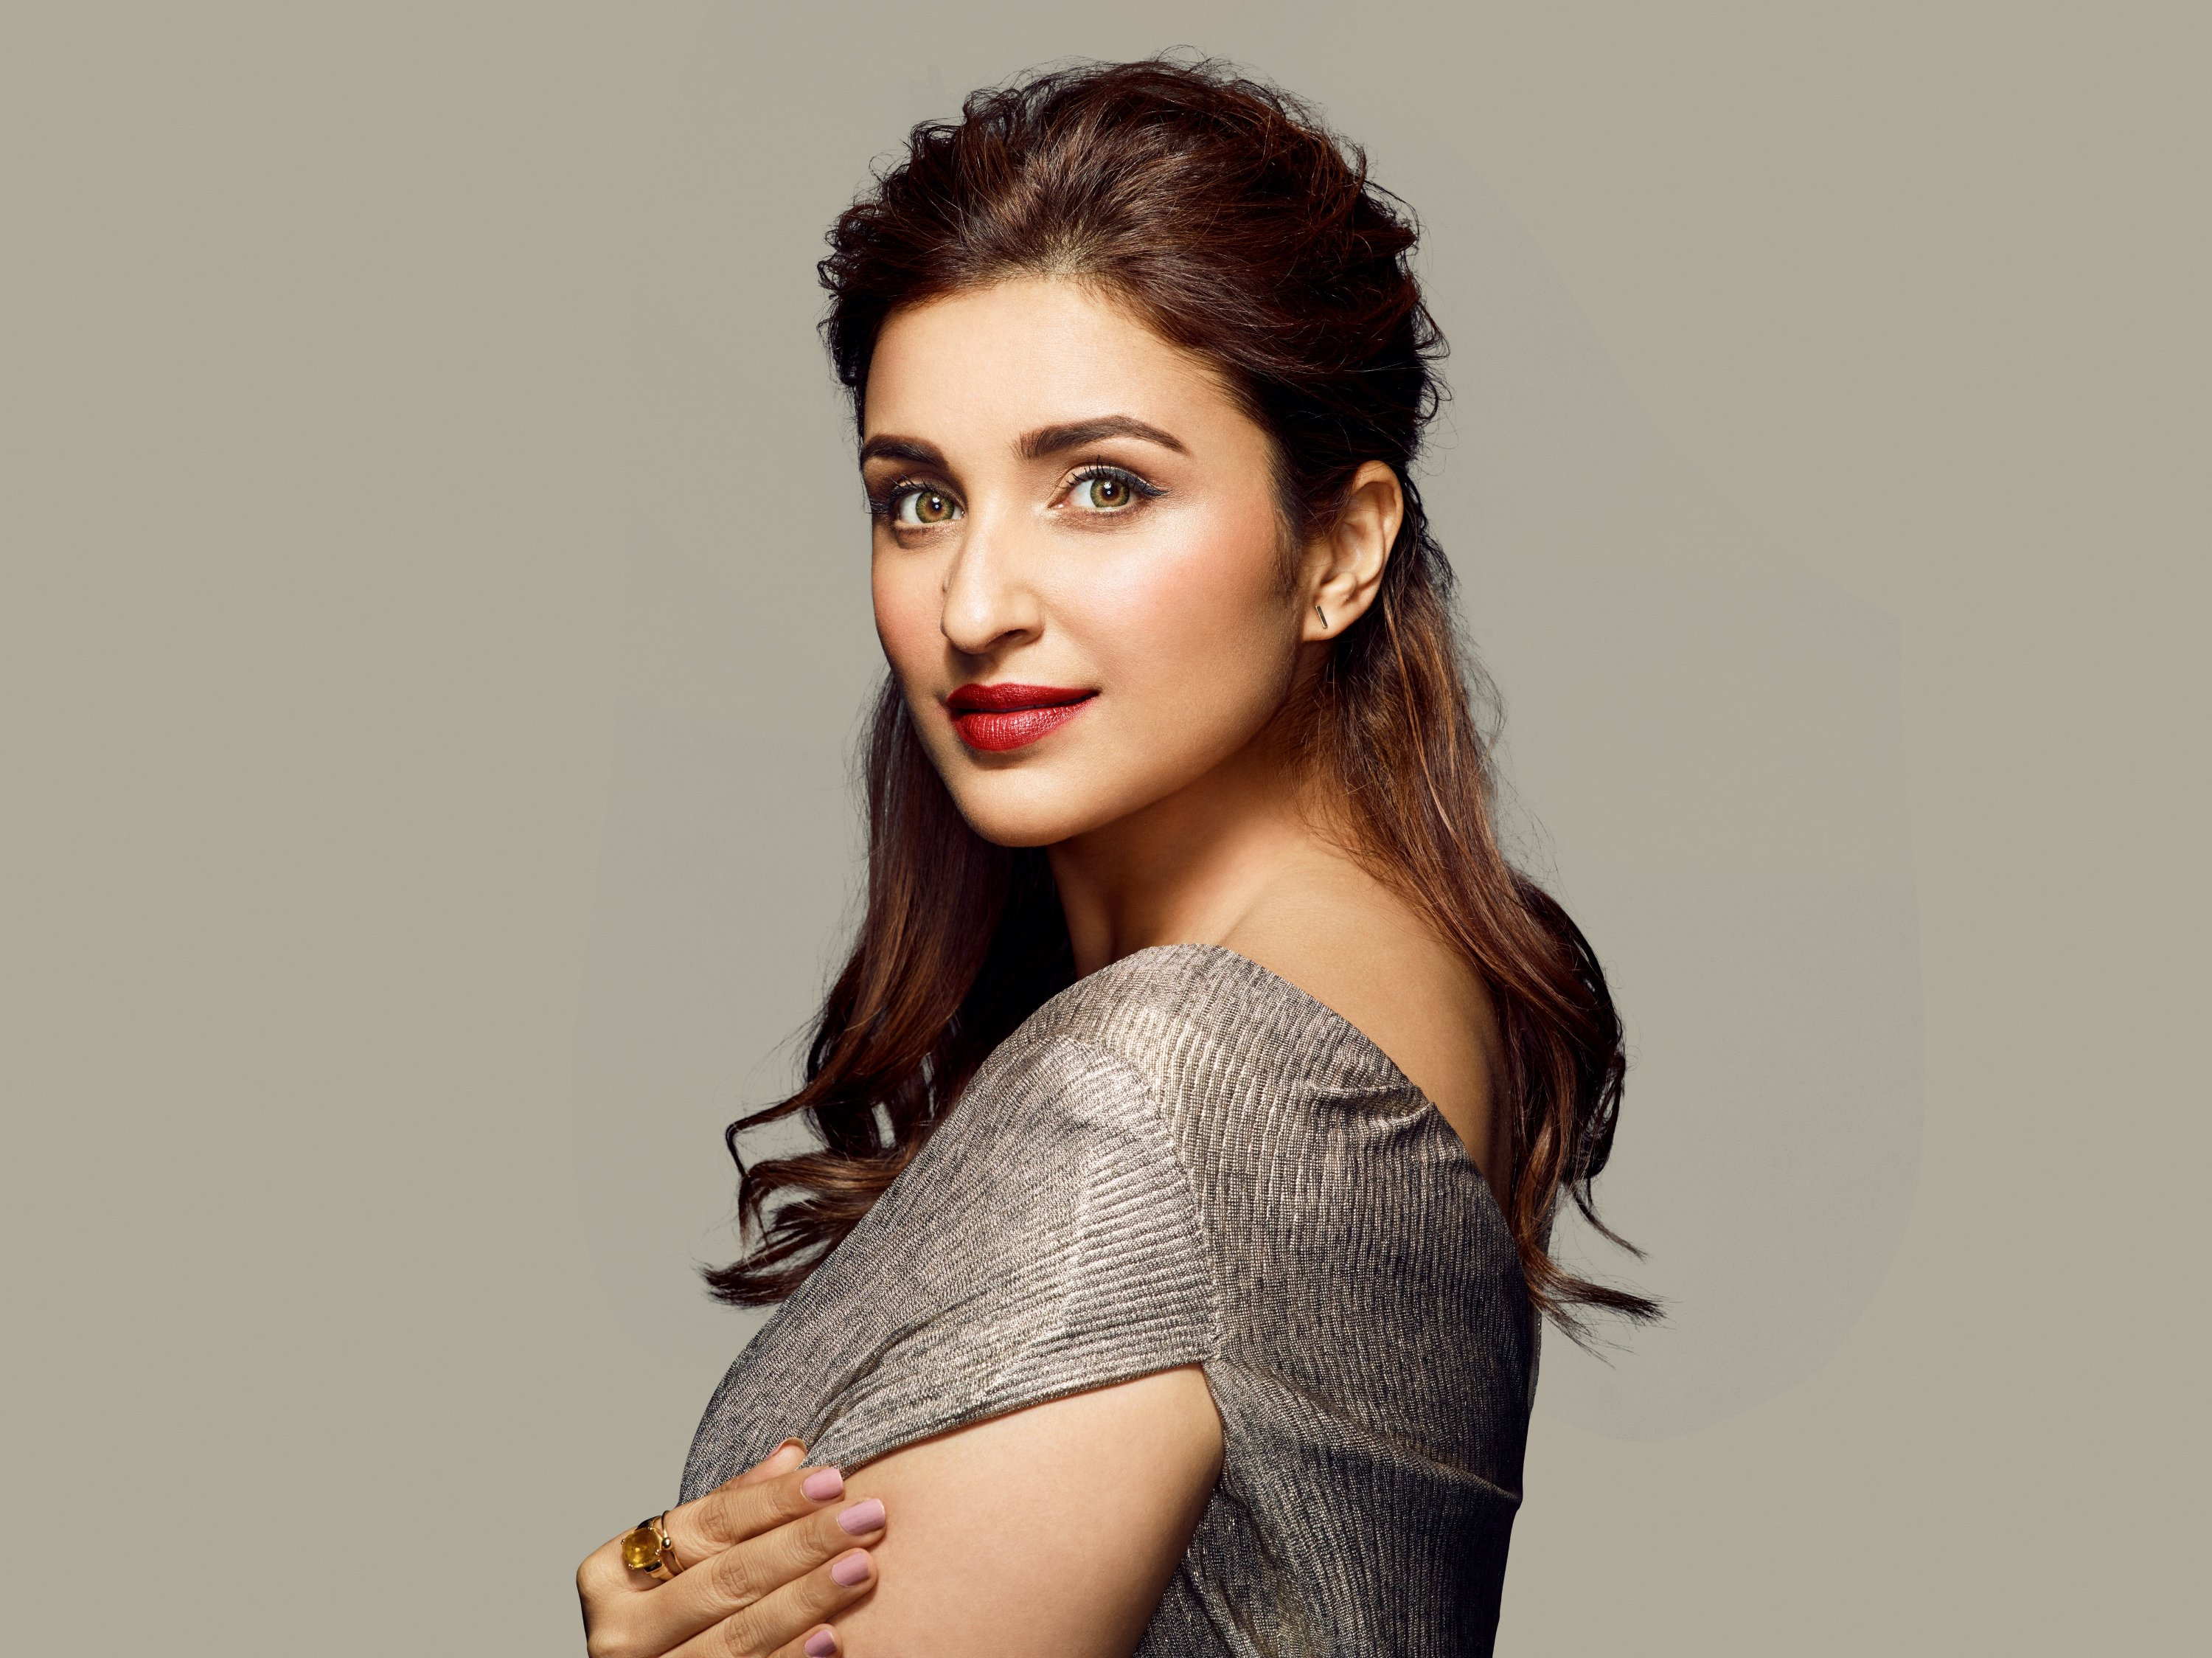 Bollywood Actress Parineeti Chopra roped in as the new face for AVON True  Make-up Range - Lifeandtrendz